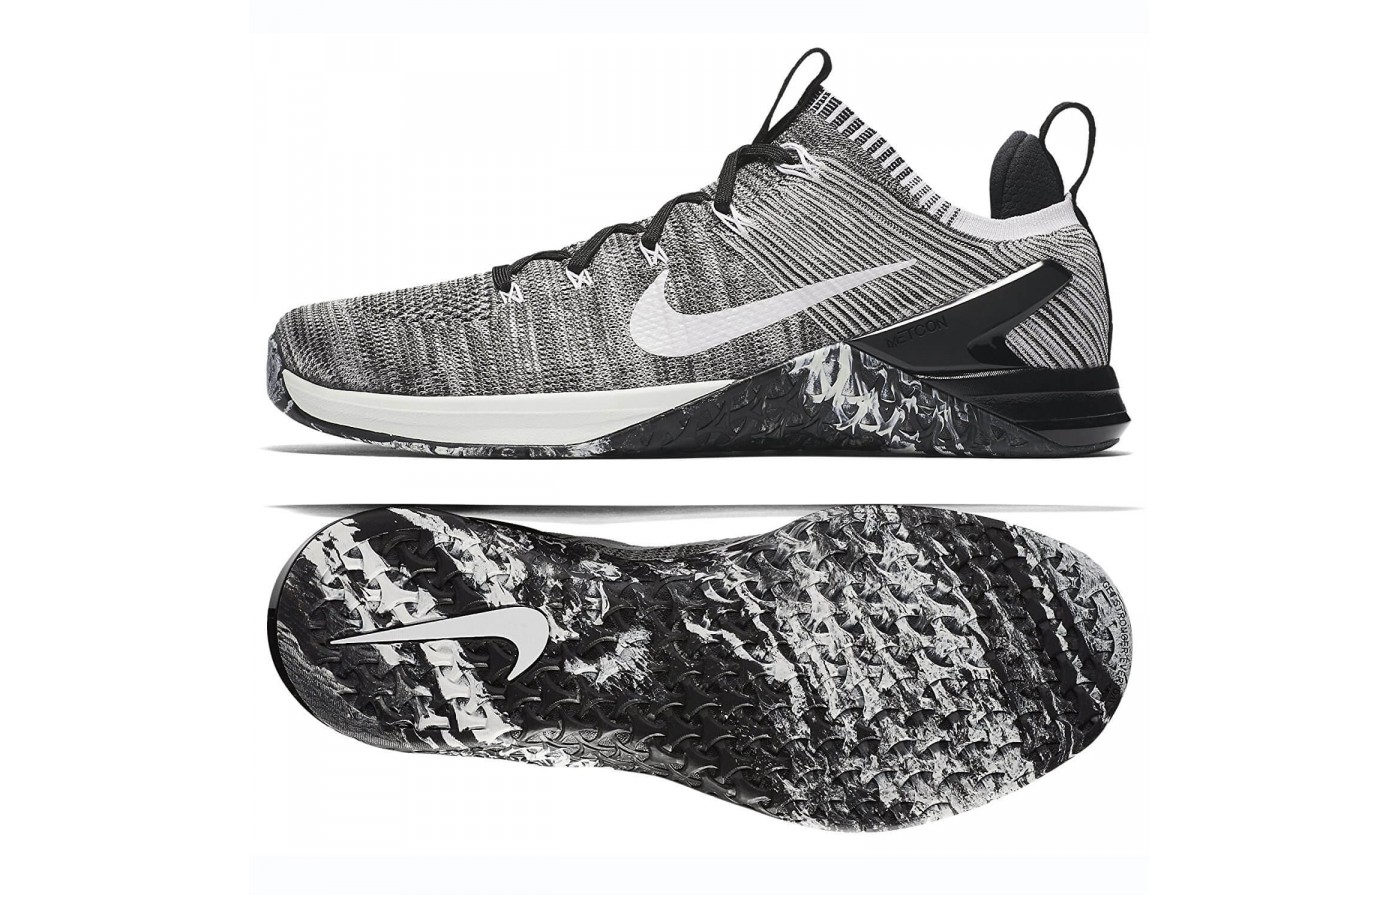 The Nike Metcon DSX Flyknit 2 has a higher drop from heel to toe compared to the original. The total drop height in this version is 6mm.